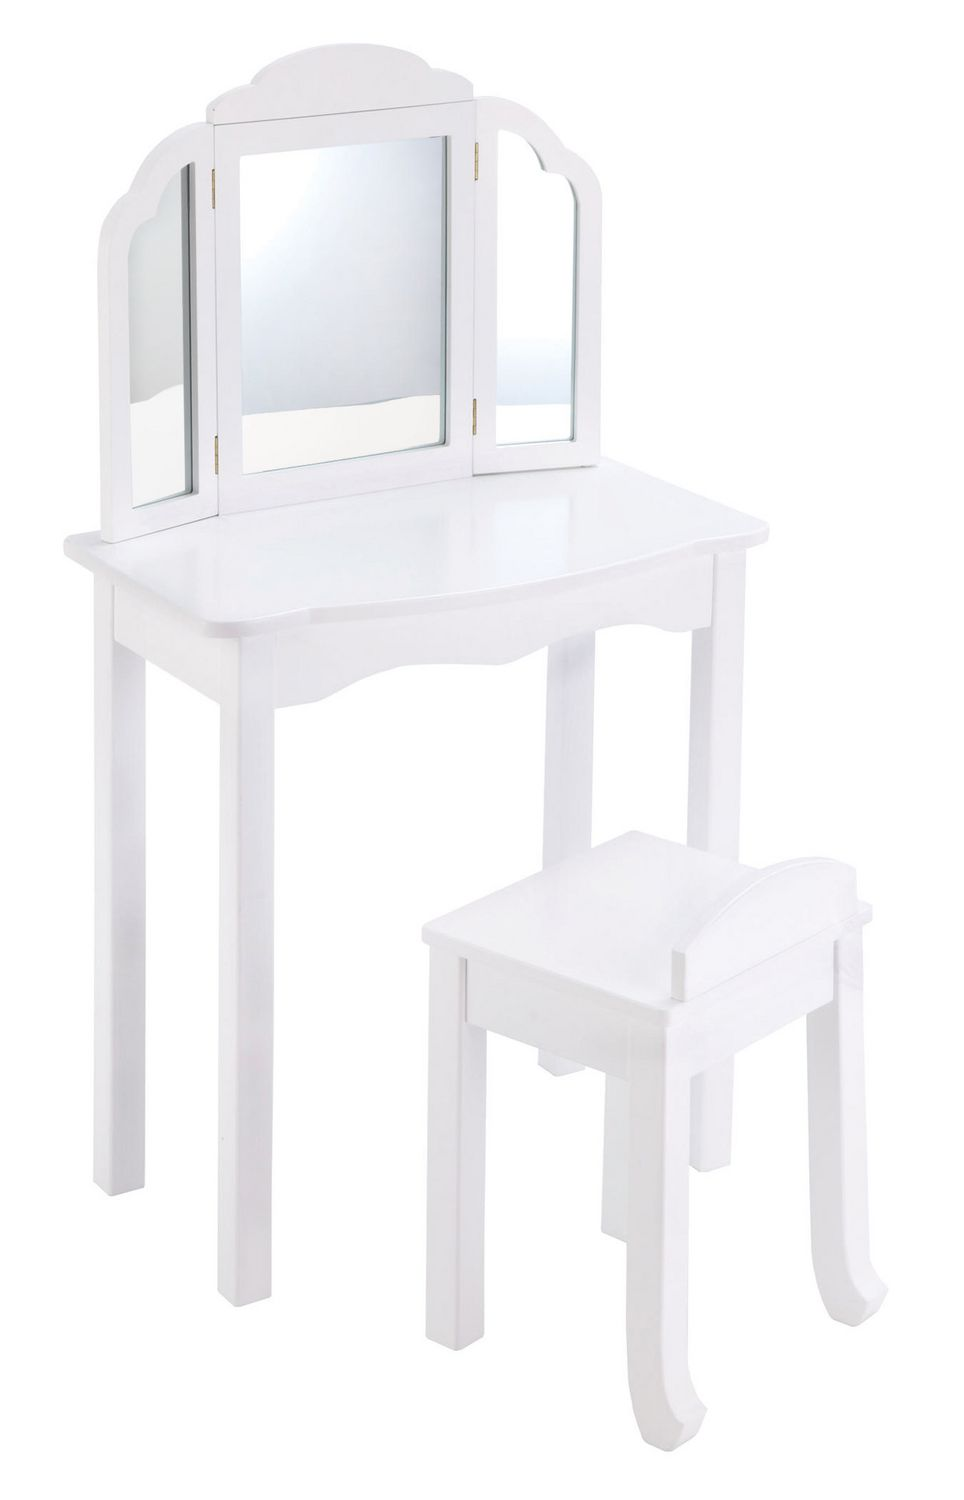 makeup vanity table walmart canada Makeup Vanity Table Walmart Canada  Mugeek Vidalondon  Makeup Vanity Table. Makeup Table Walmart